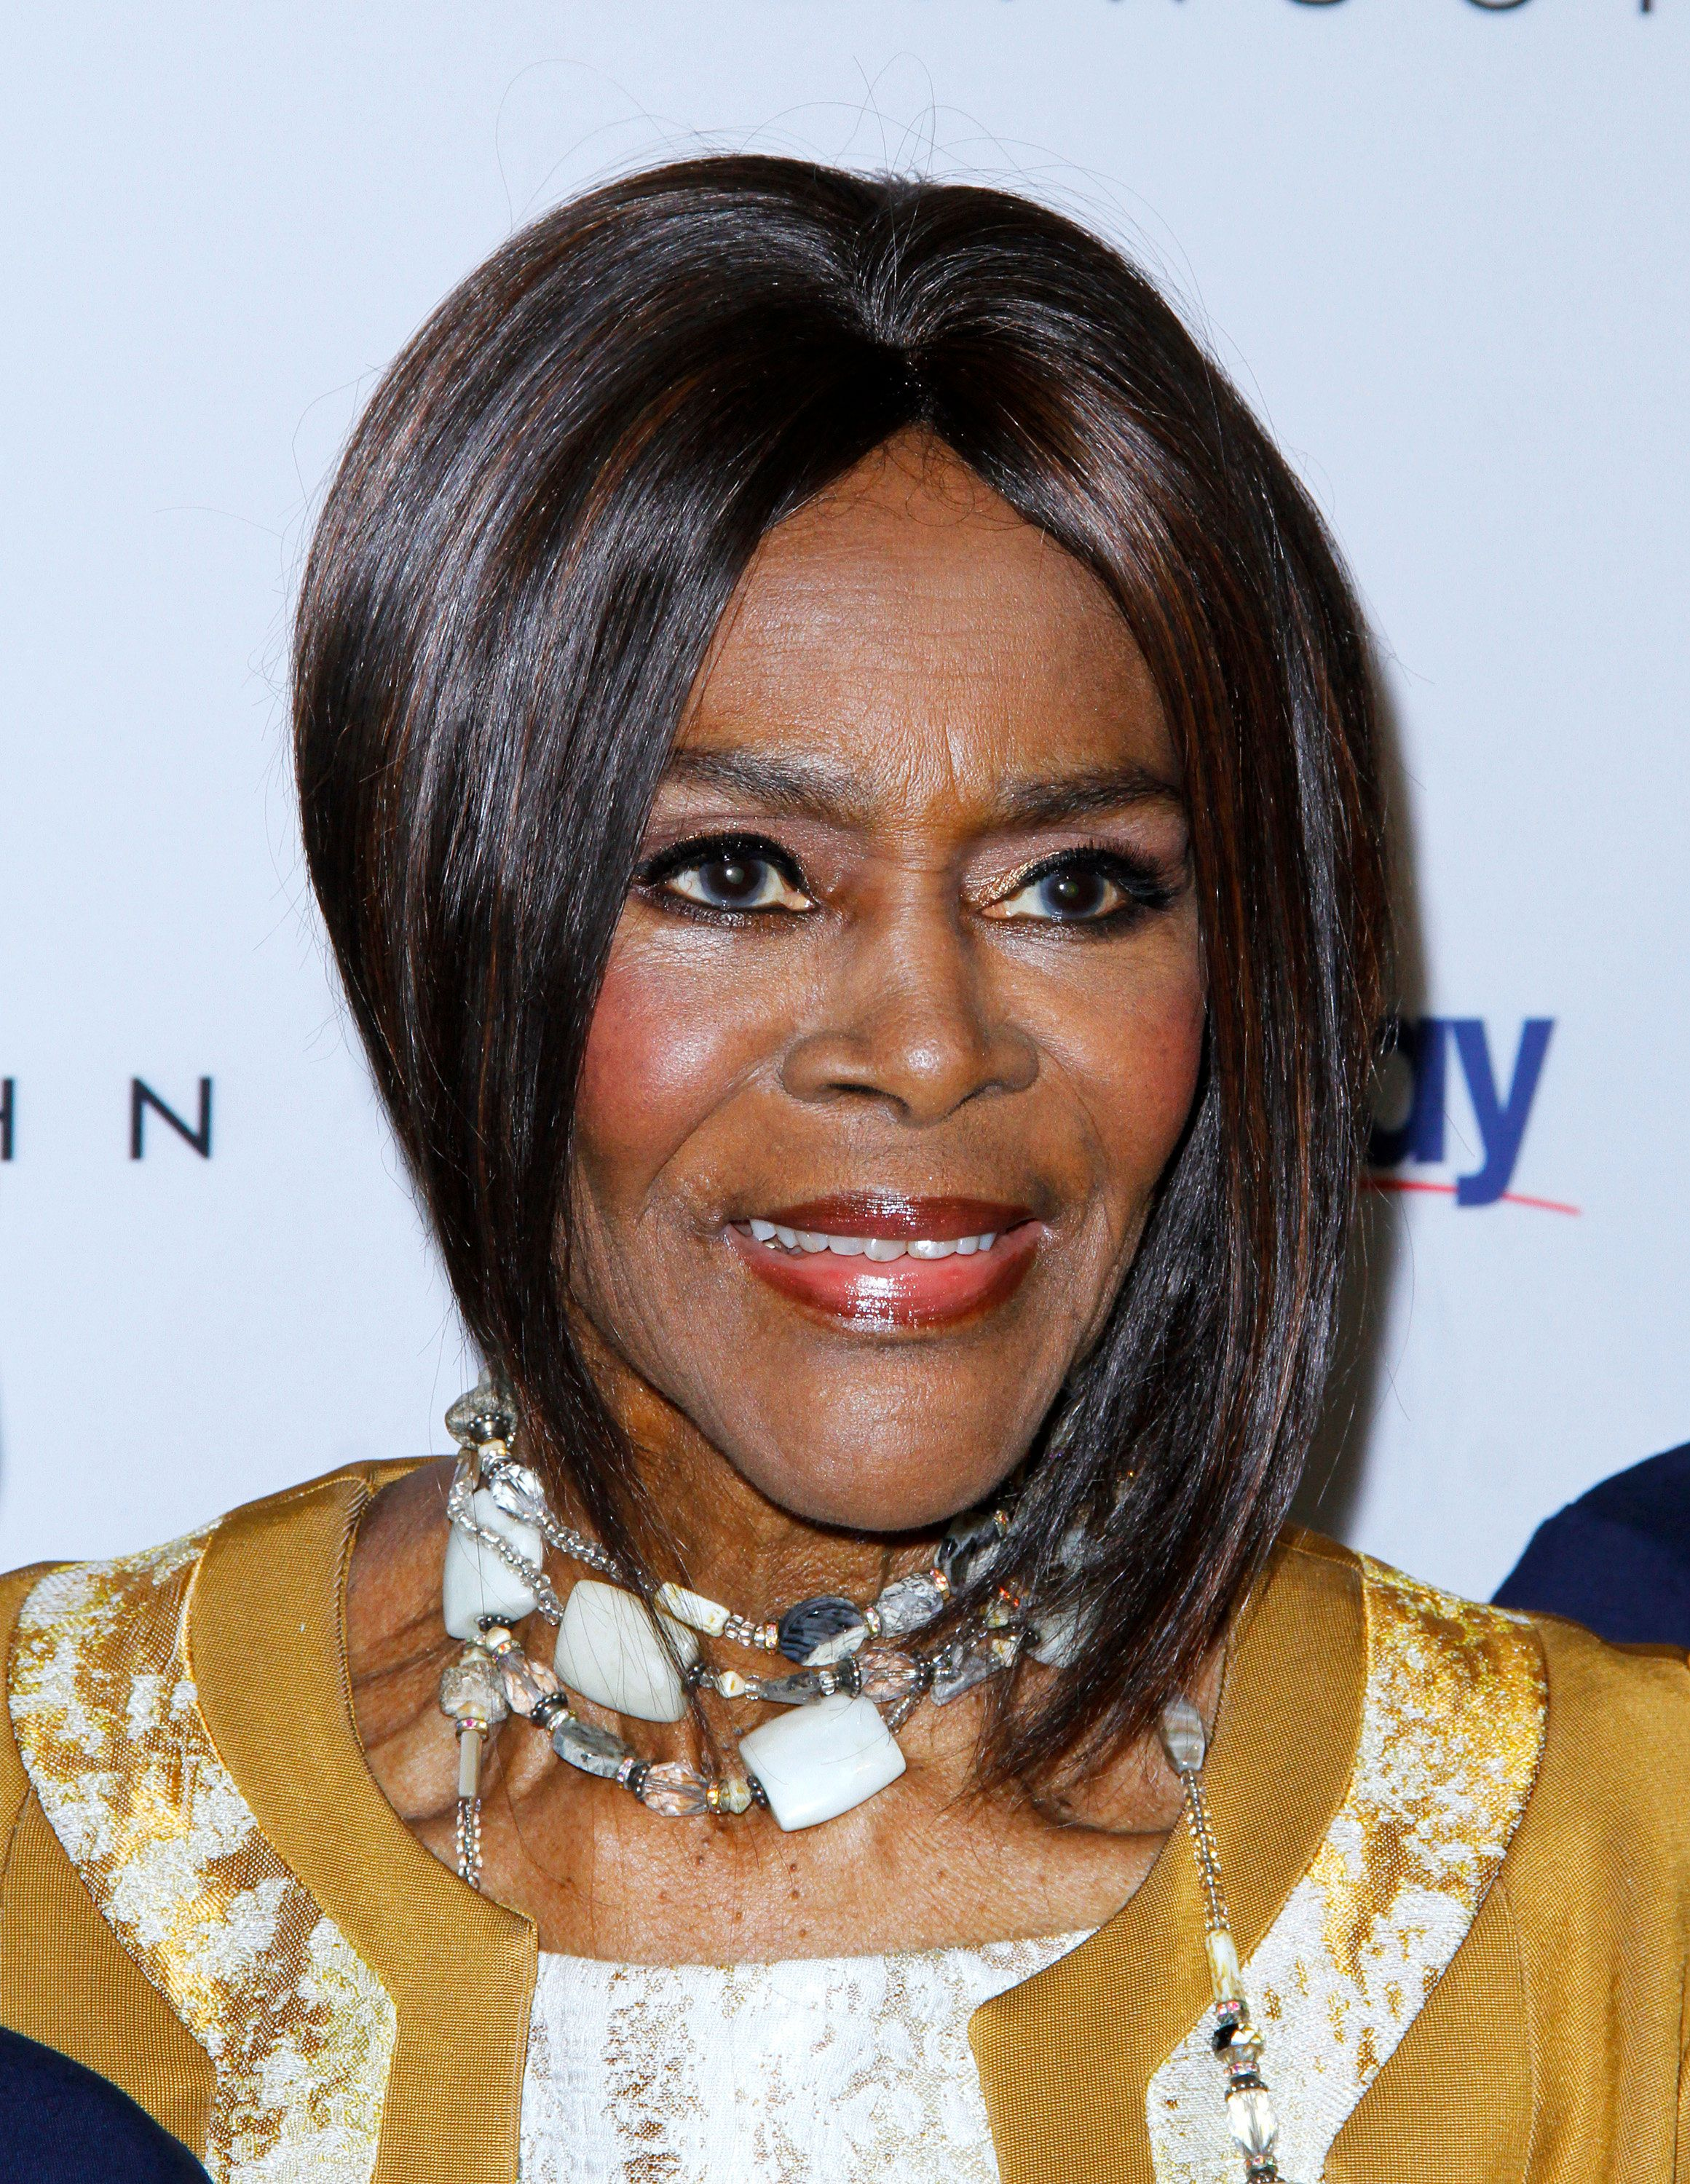 NEW YORK, NEW YORK - APRIL 11:  Cecily Tyson attends the11th Annual Skating with the Stars Gala at 583 Park Avenue on April 11, 2016 in New York City. (Photo by Donna Ward/Getty Images)